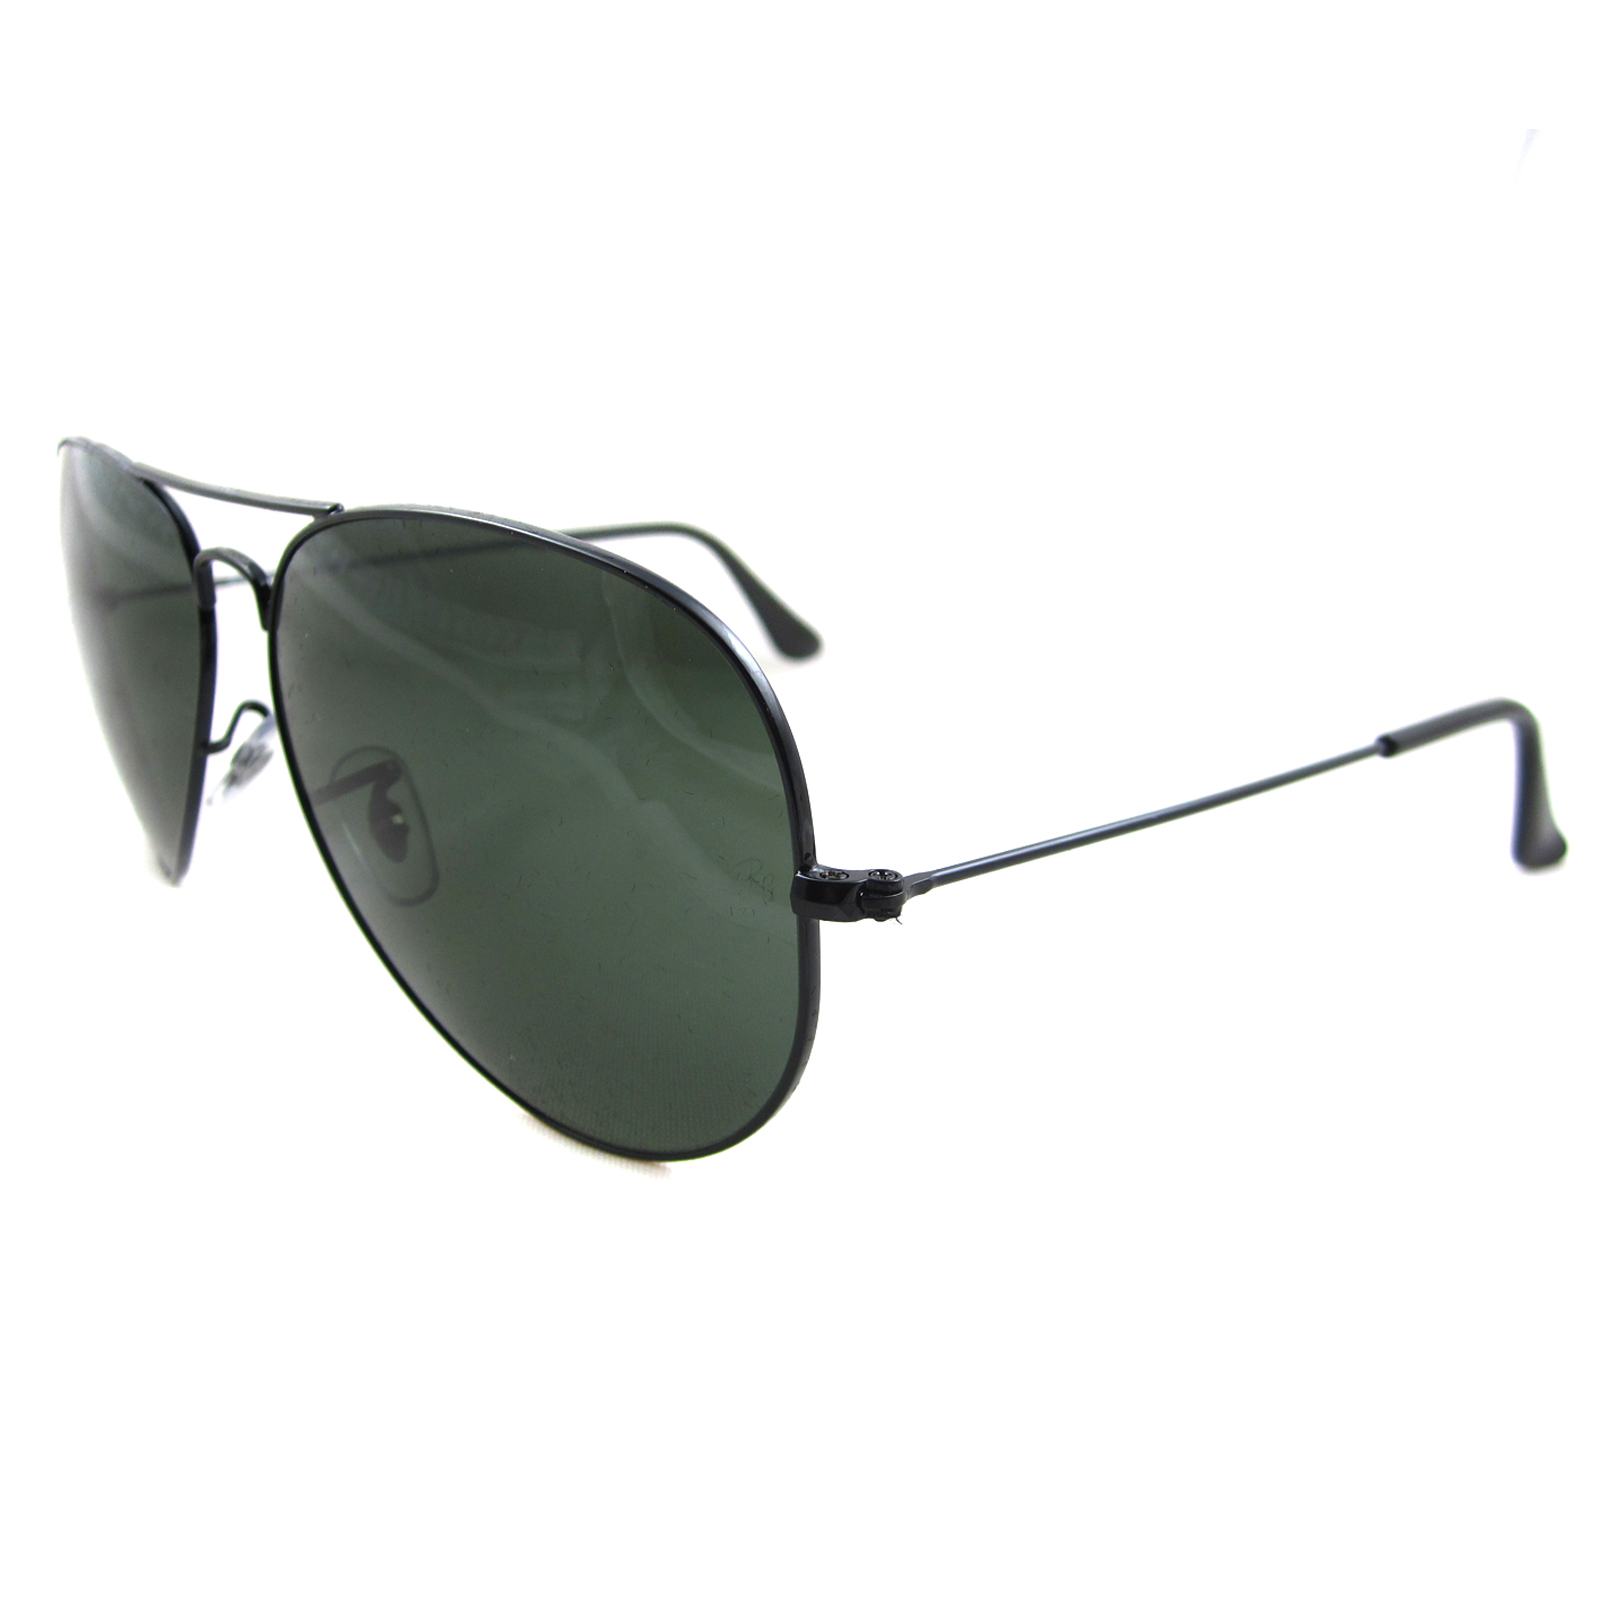 8c63049dfc Sentinel Ray-Ban Sunglasses Large Aviator 3026 Black Green G-15 L2821